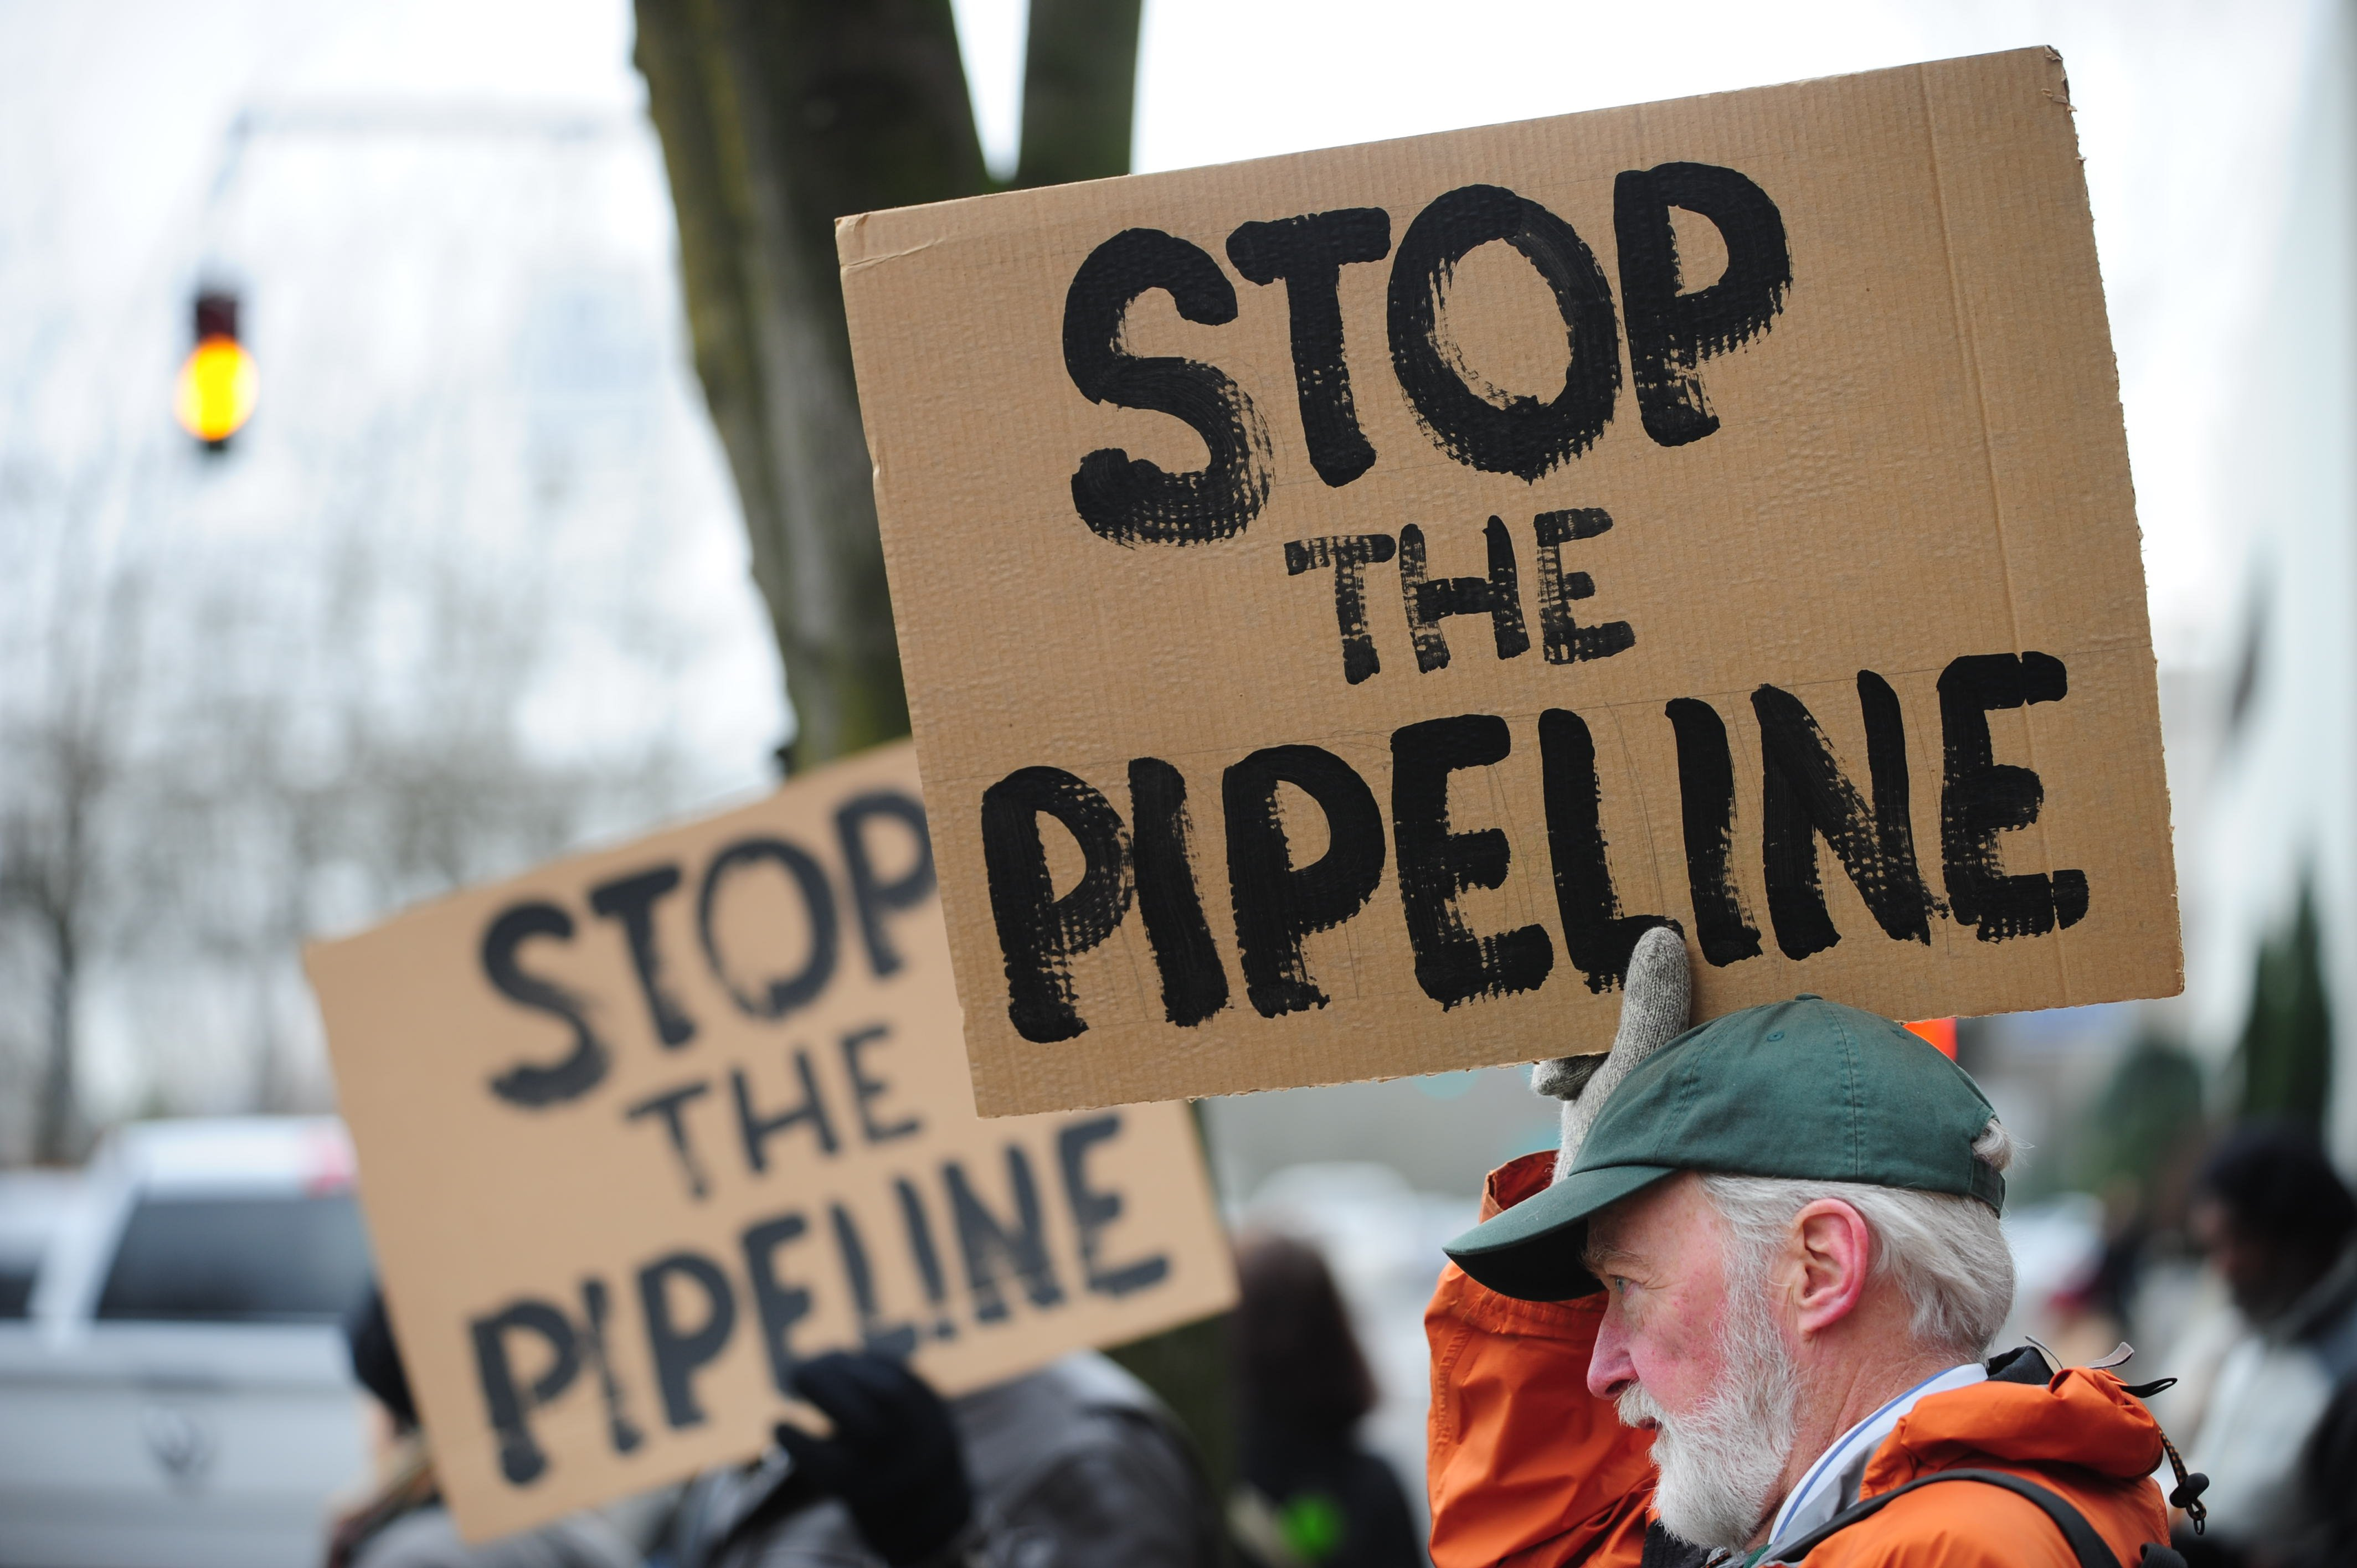 Protesters demonstrate against TransCanada in Portland on the opening day of the southern leg of the Keystone Pipeline, on Jan. 22, 2014.